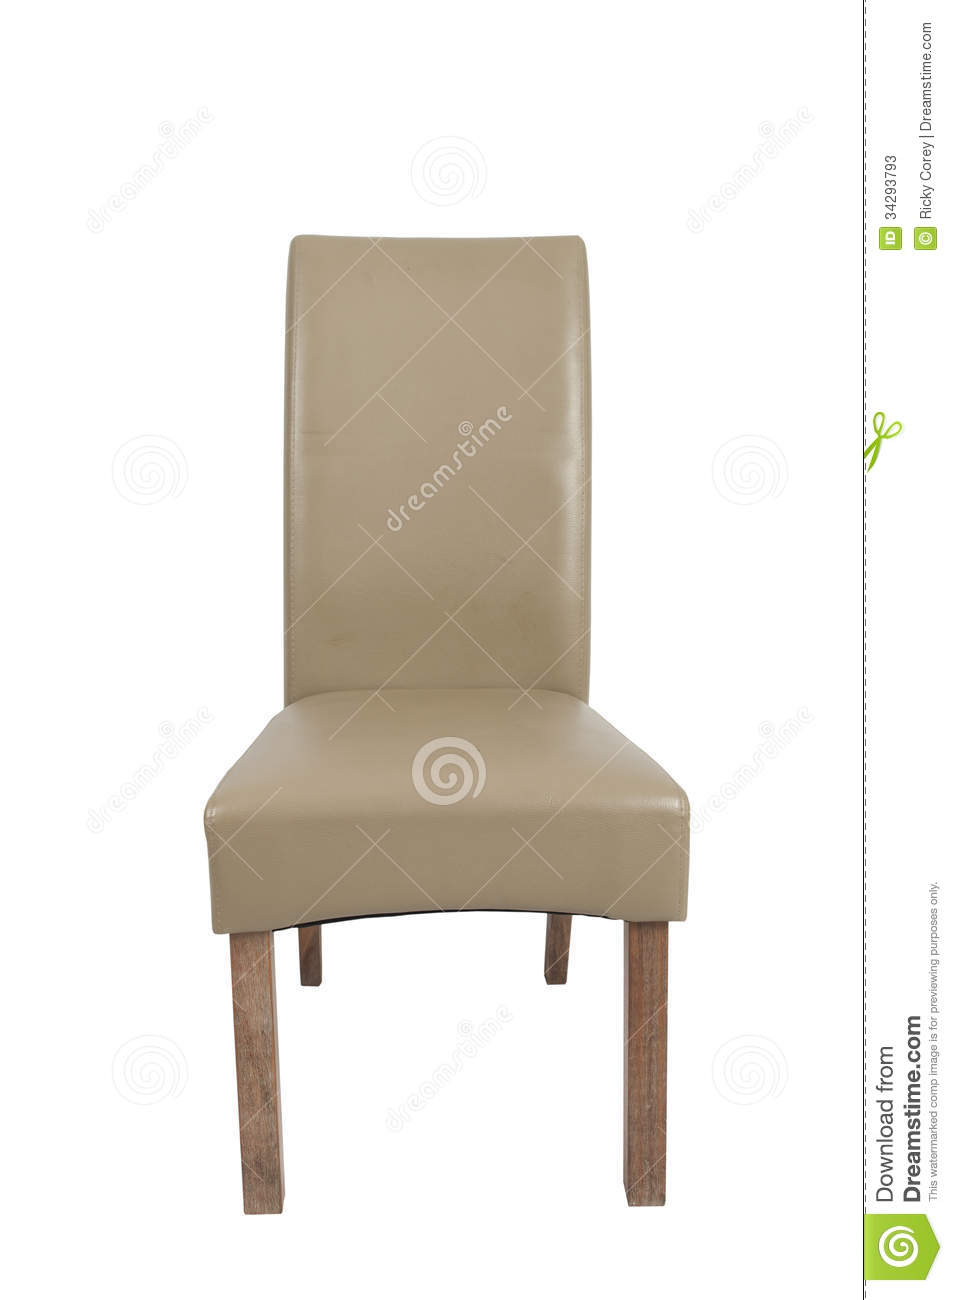 single wooden dining room chair on a white background